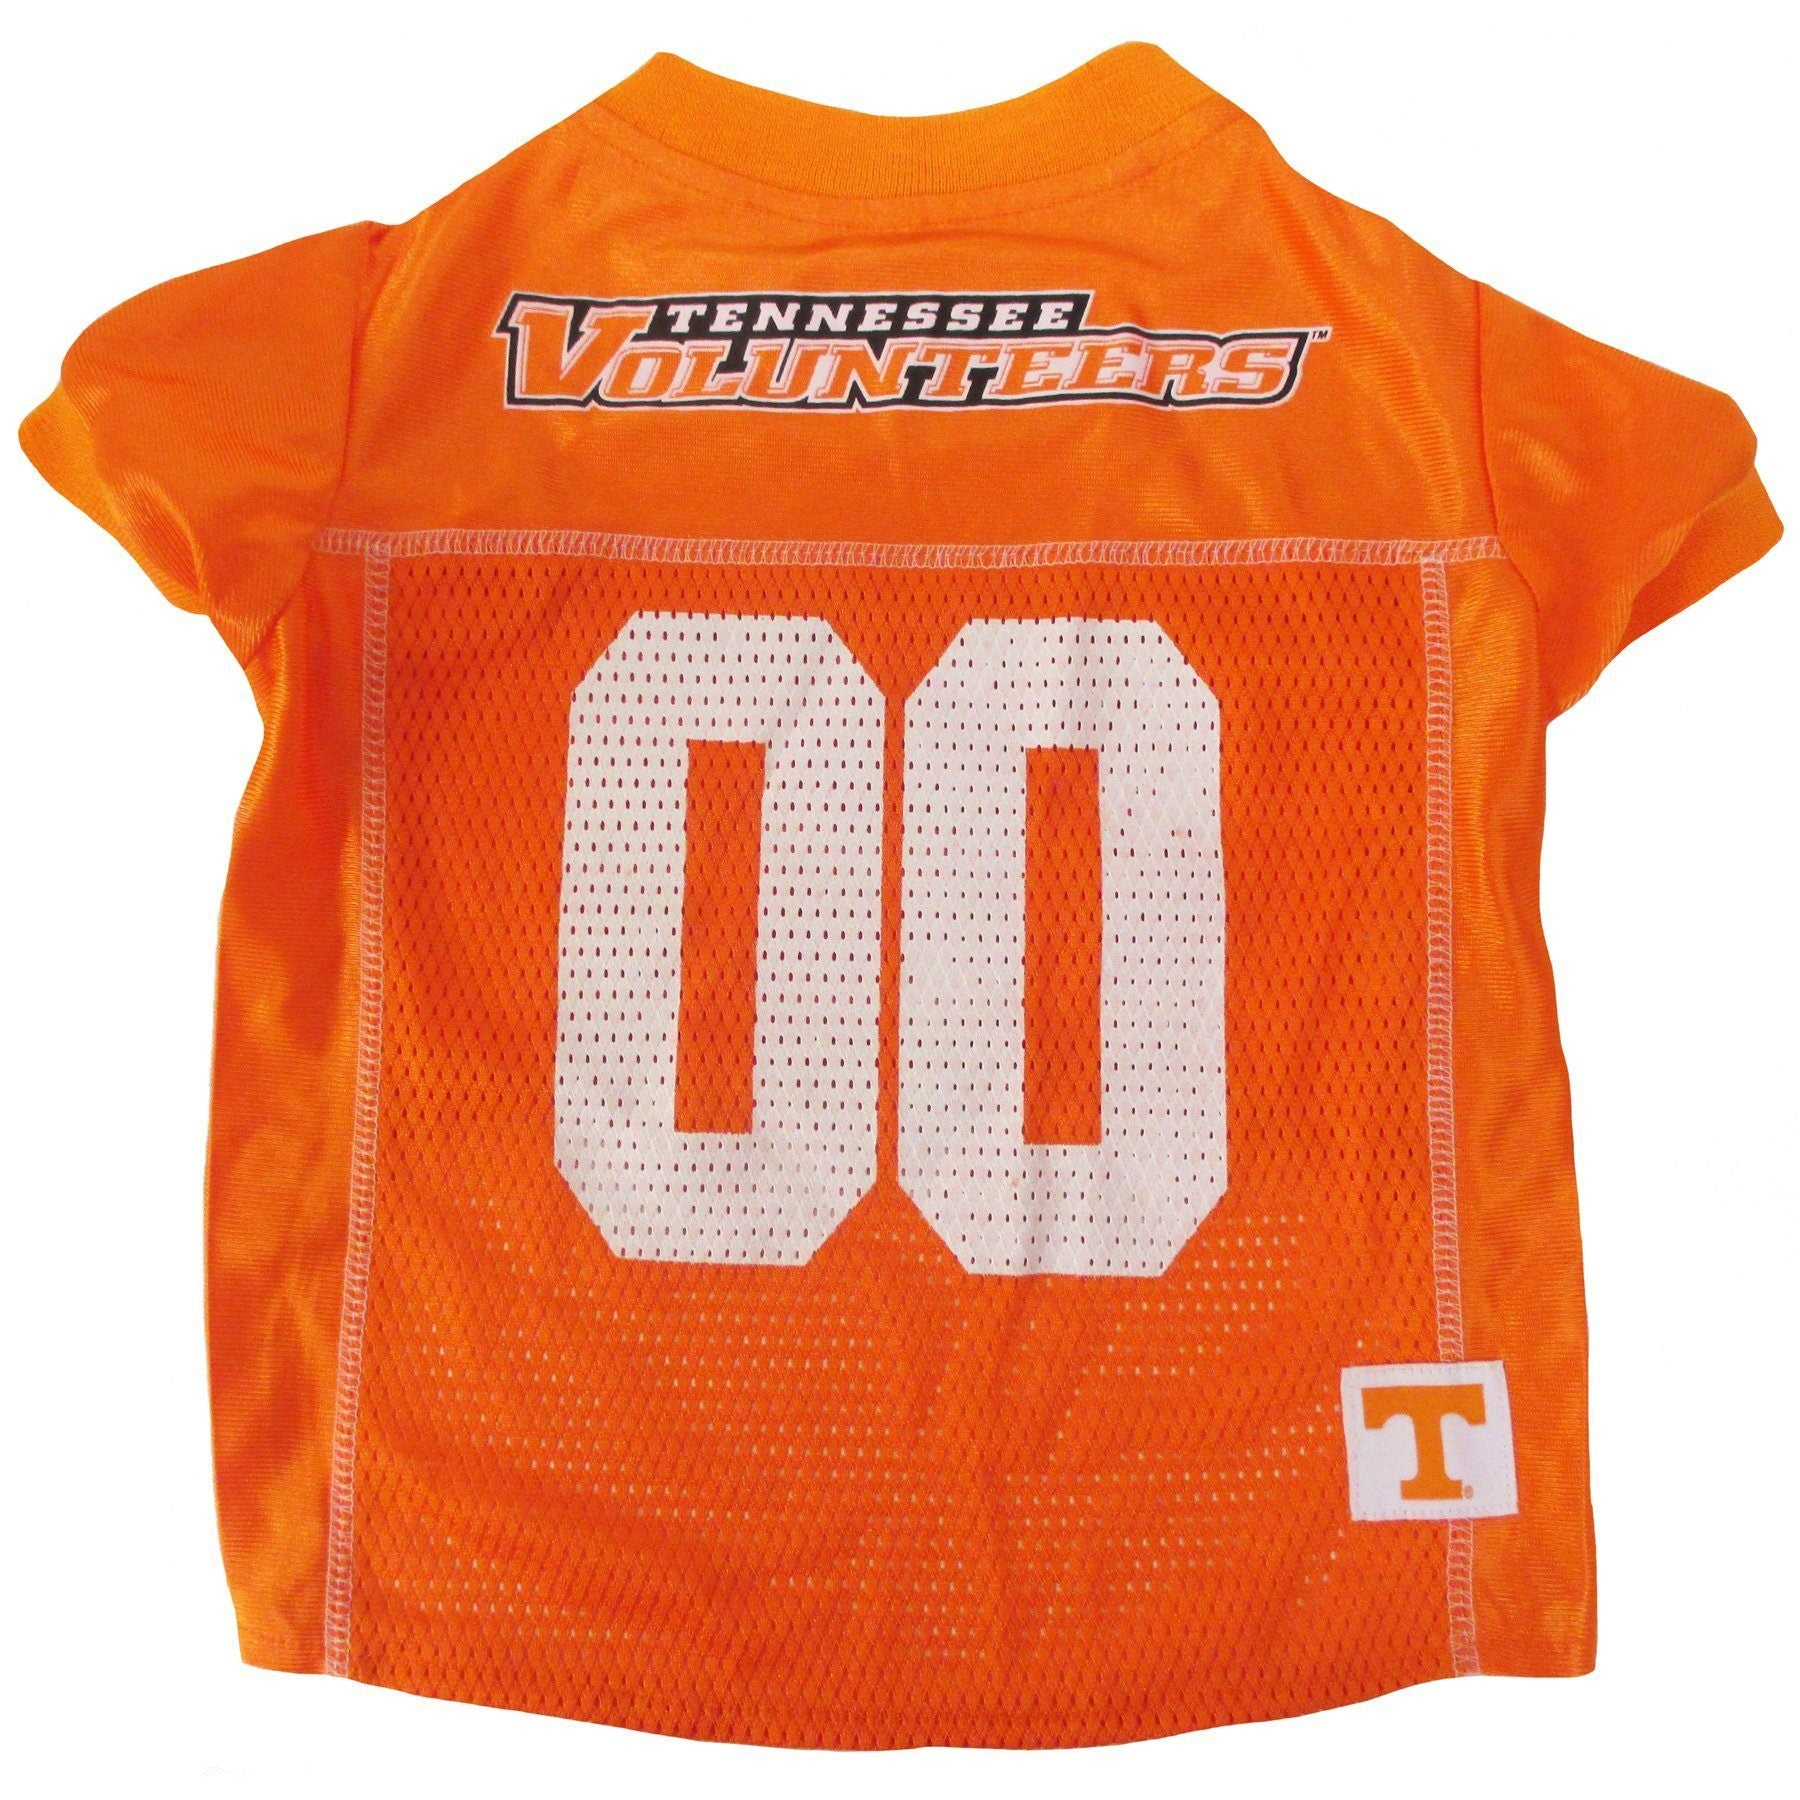 Tennessee Volunteers Football Puppy Dog Jersey - Jersey Champs - Custom Basketball, Baseball, Football & Hockey Jerseys